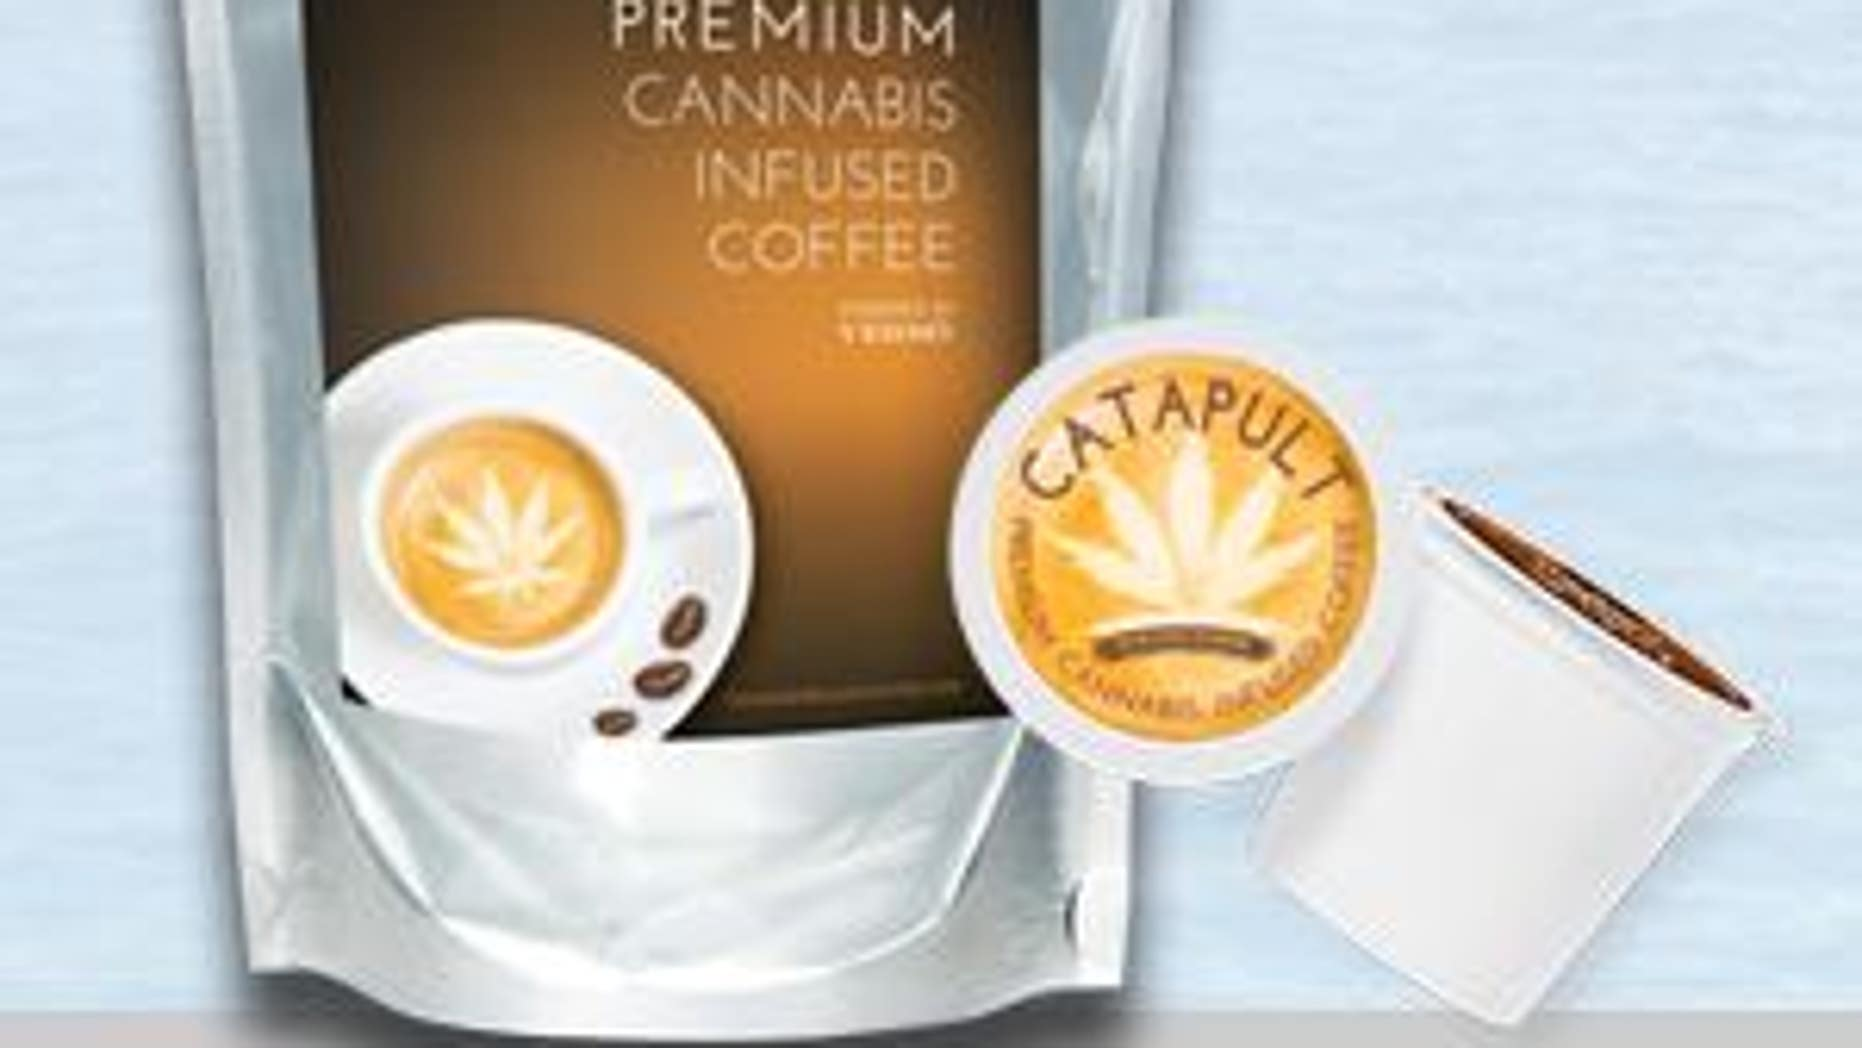 Cannabis infused coffee is available in loose grounds and convenient single-serving pods.